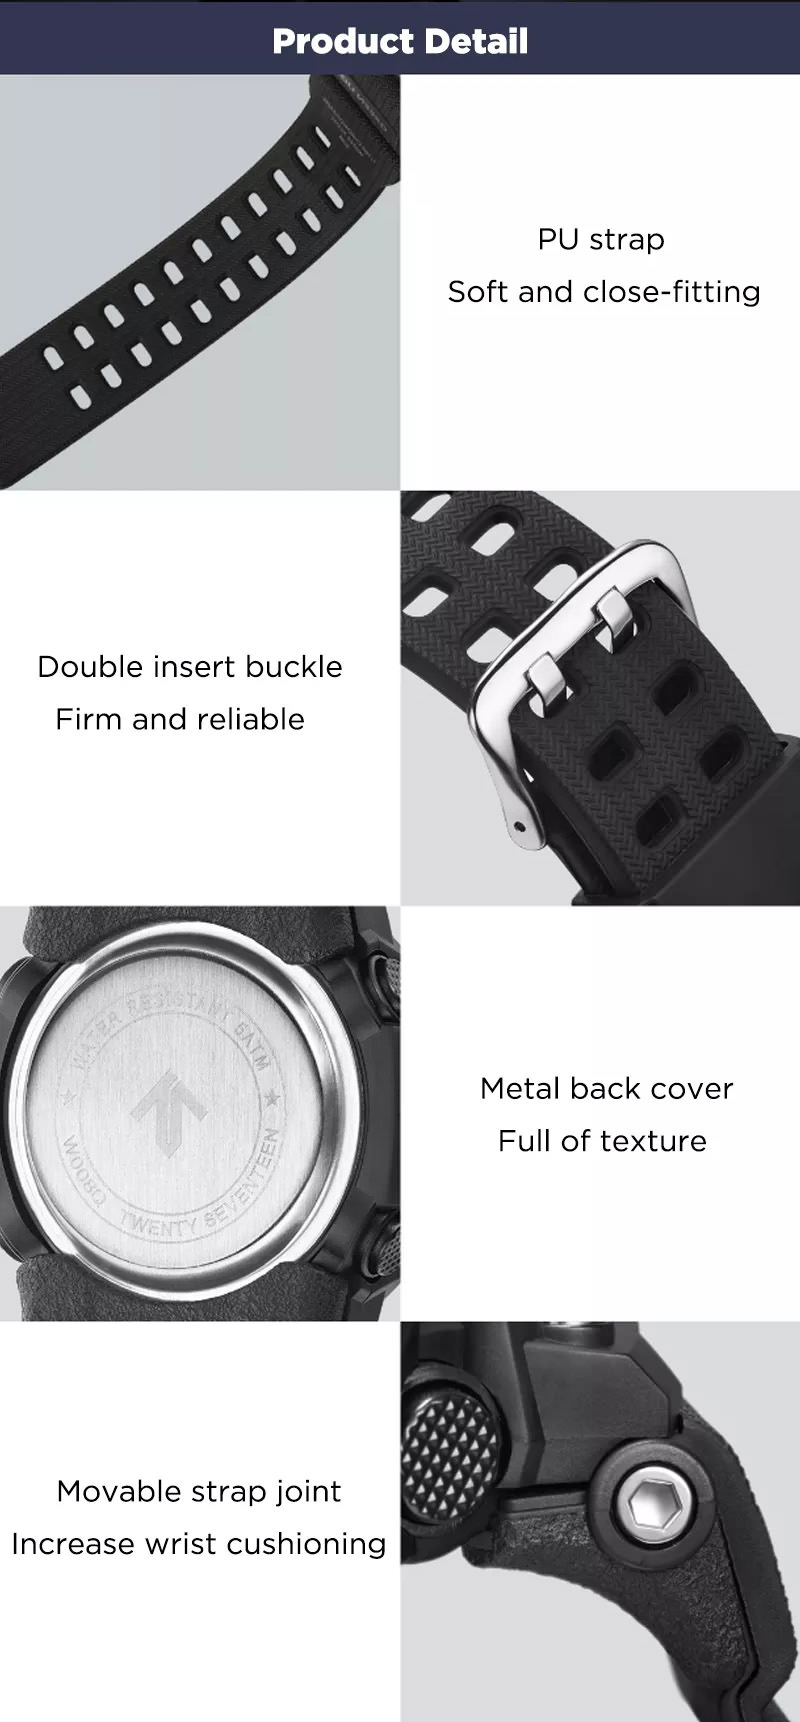 buy xiaomi twentyseventeen digital watch